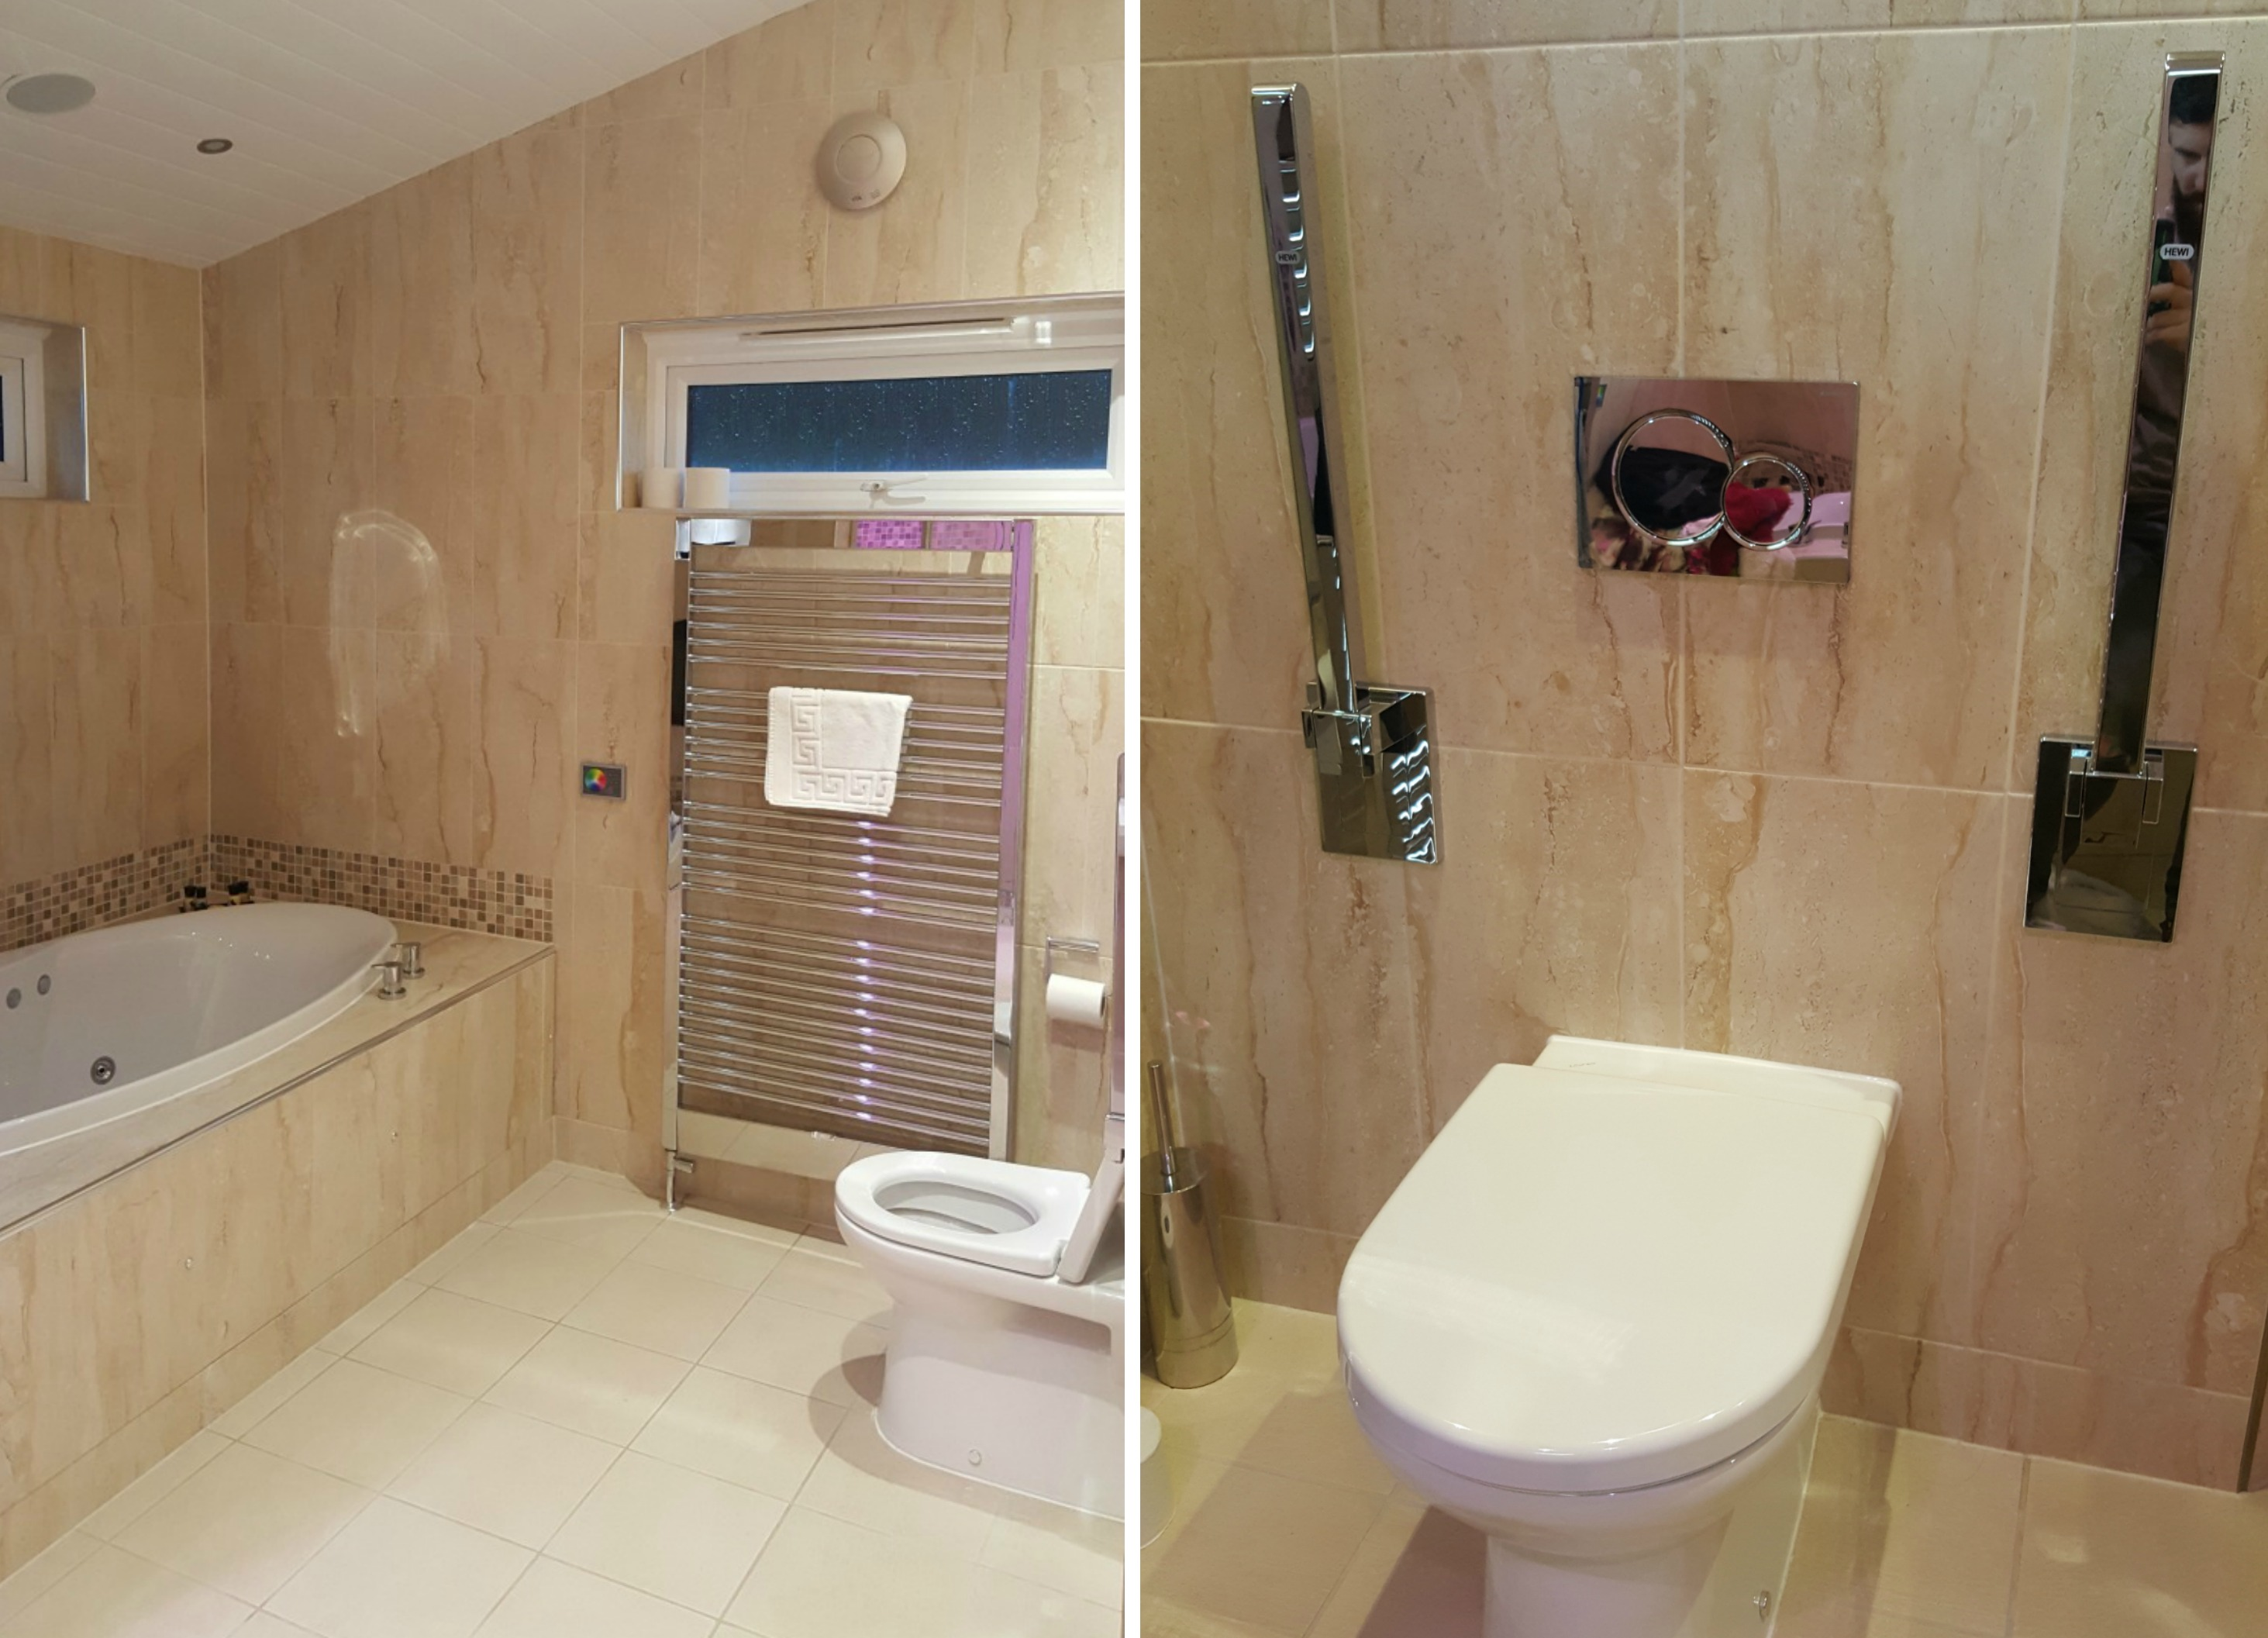 The Bradbury master ensuite accessible toilet